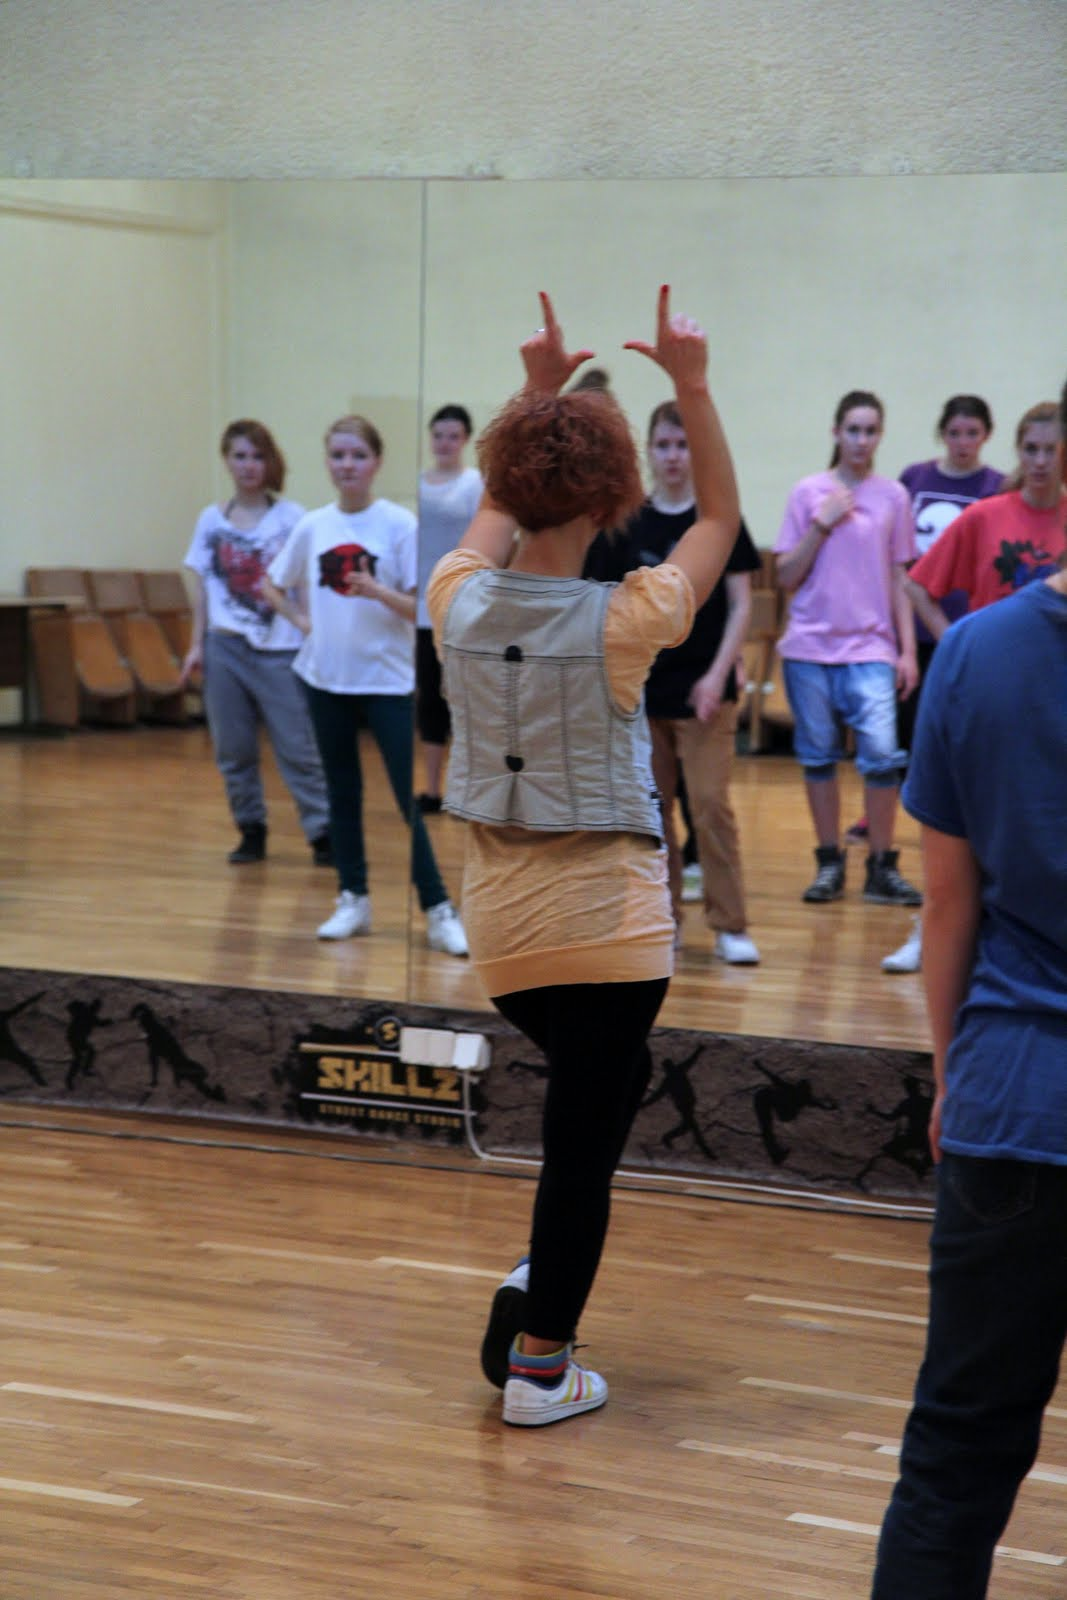 Waacking workshop with Nastya (LV) - IMG_2009.JPG